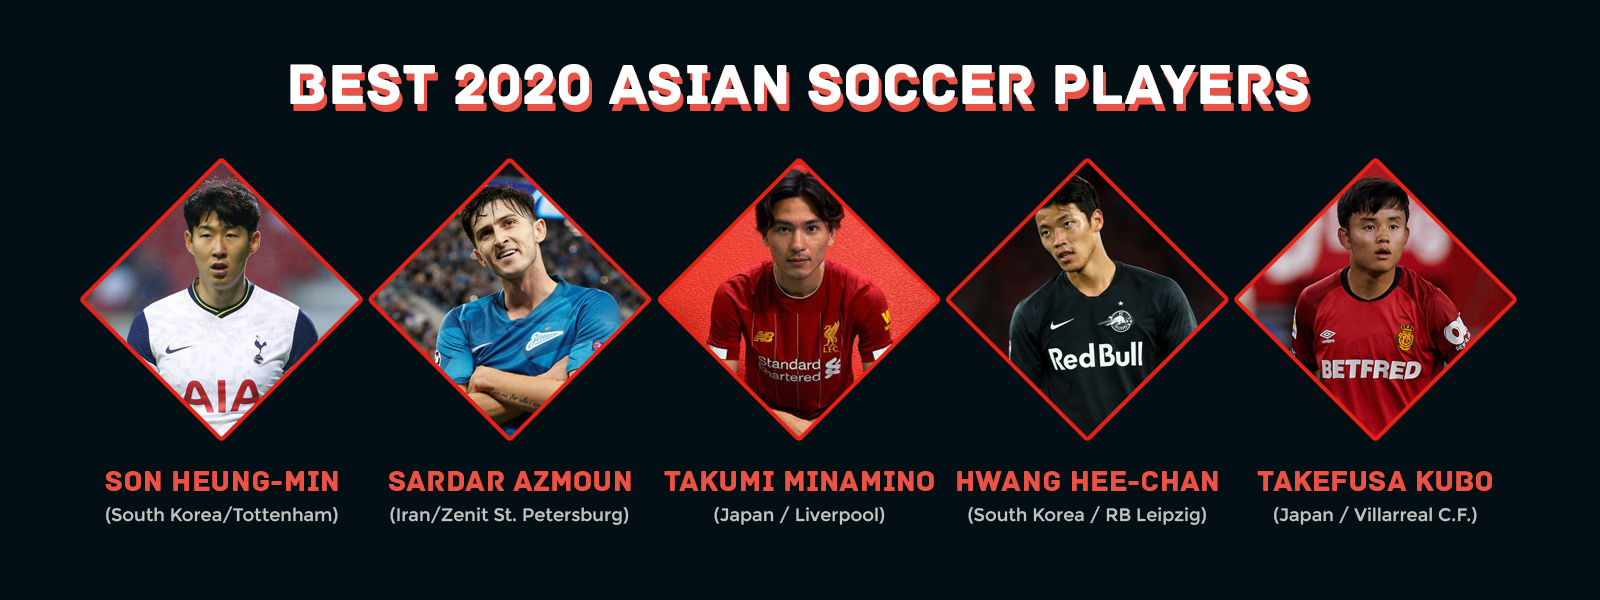 2020 Top Asian Soccer Players